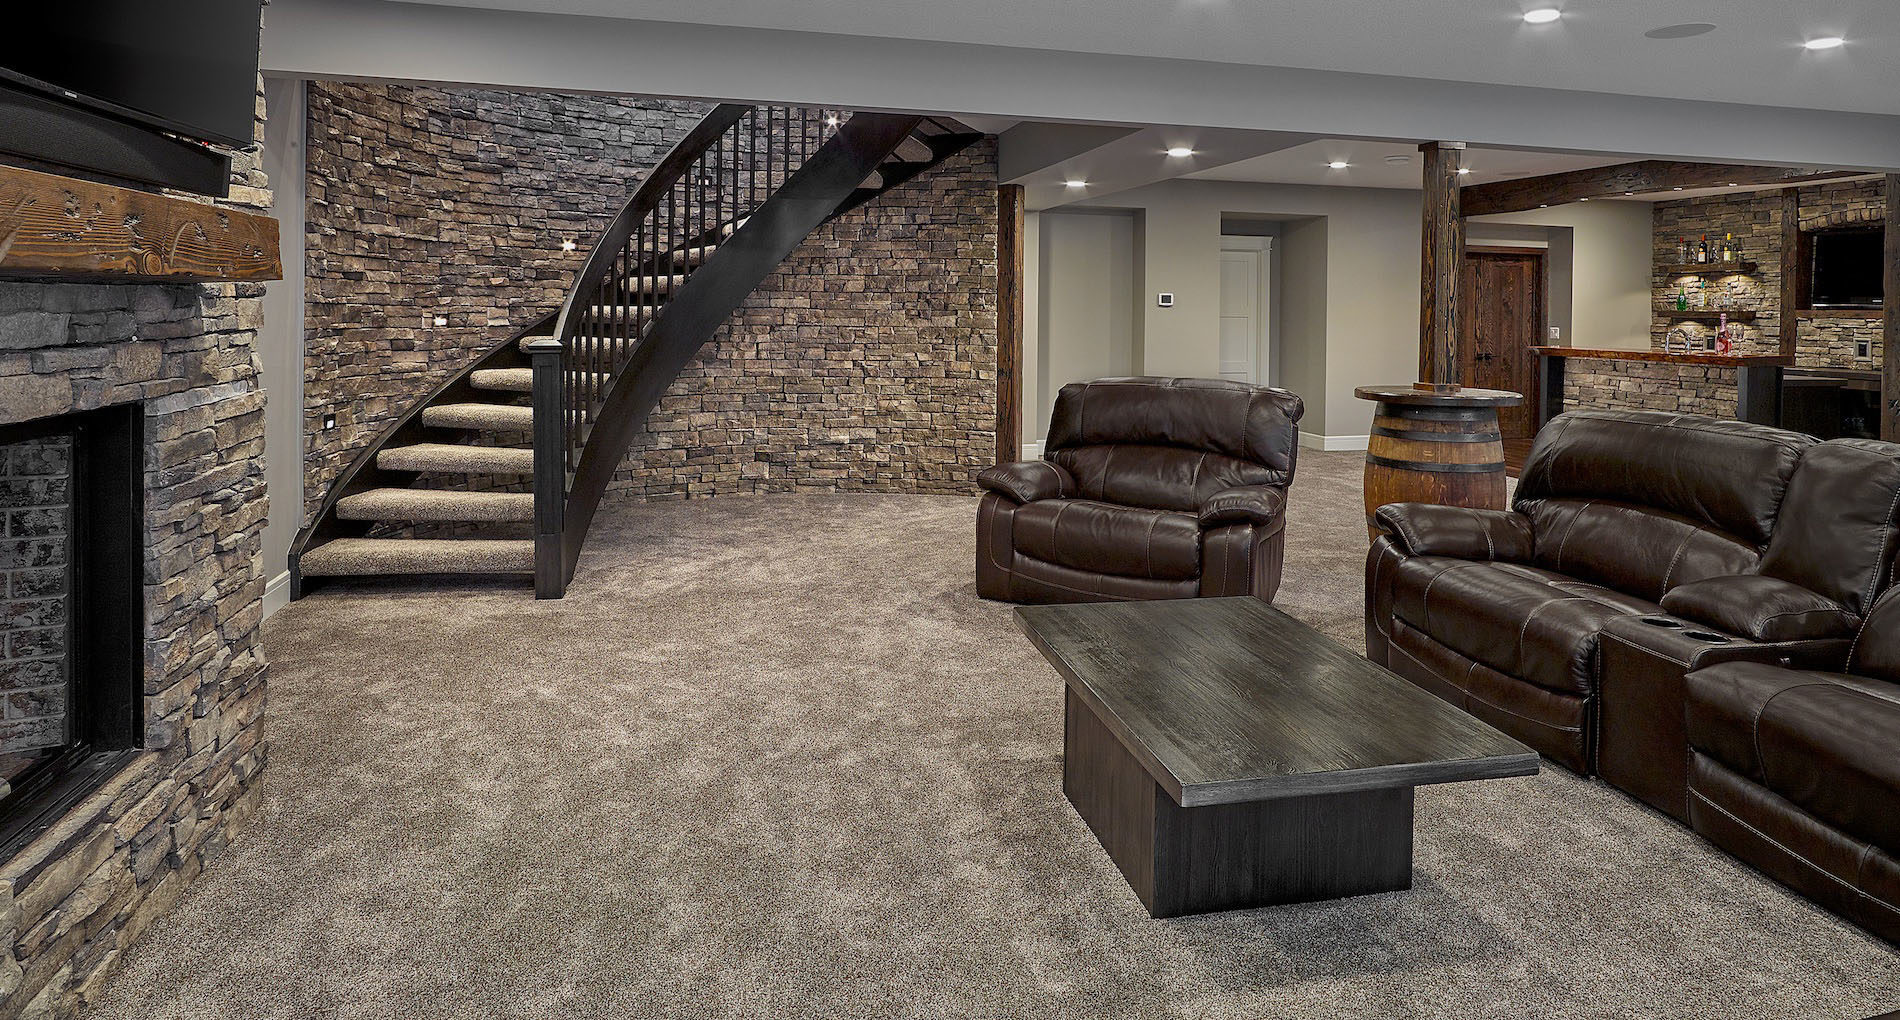 Finished Basement Renovations & Conversions In Calgary